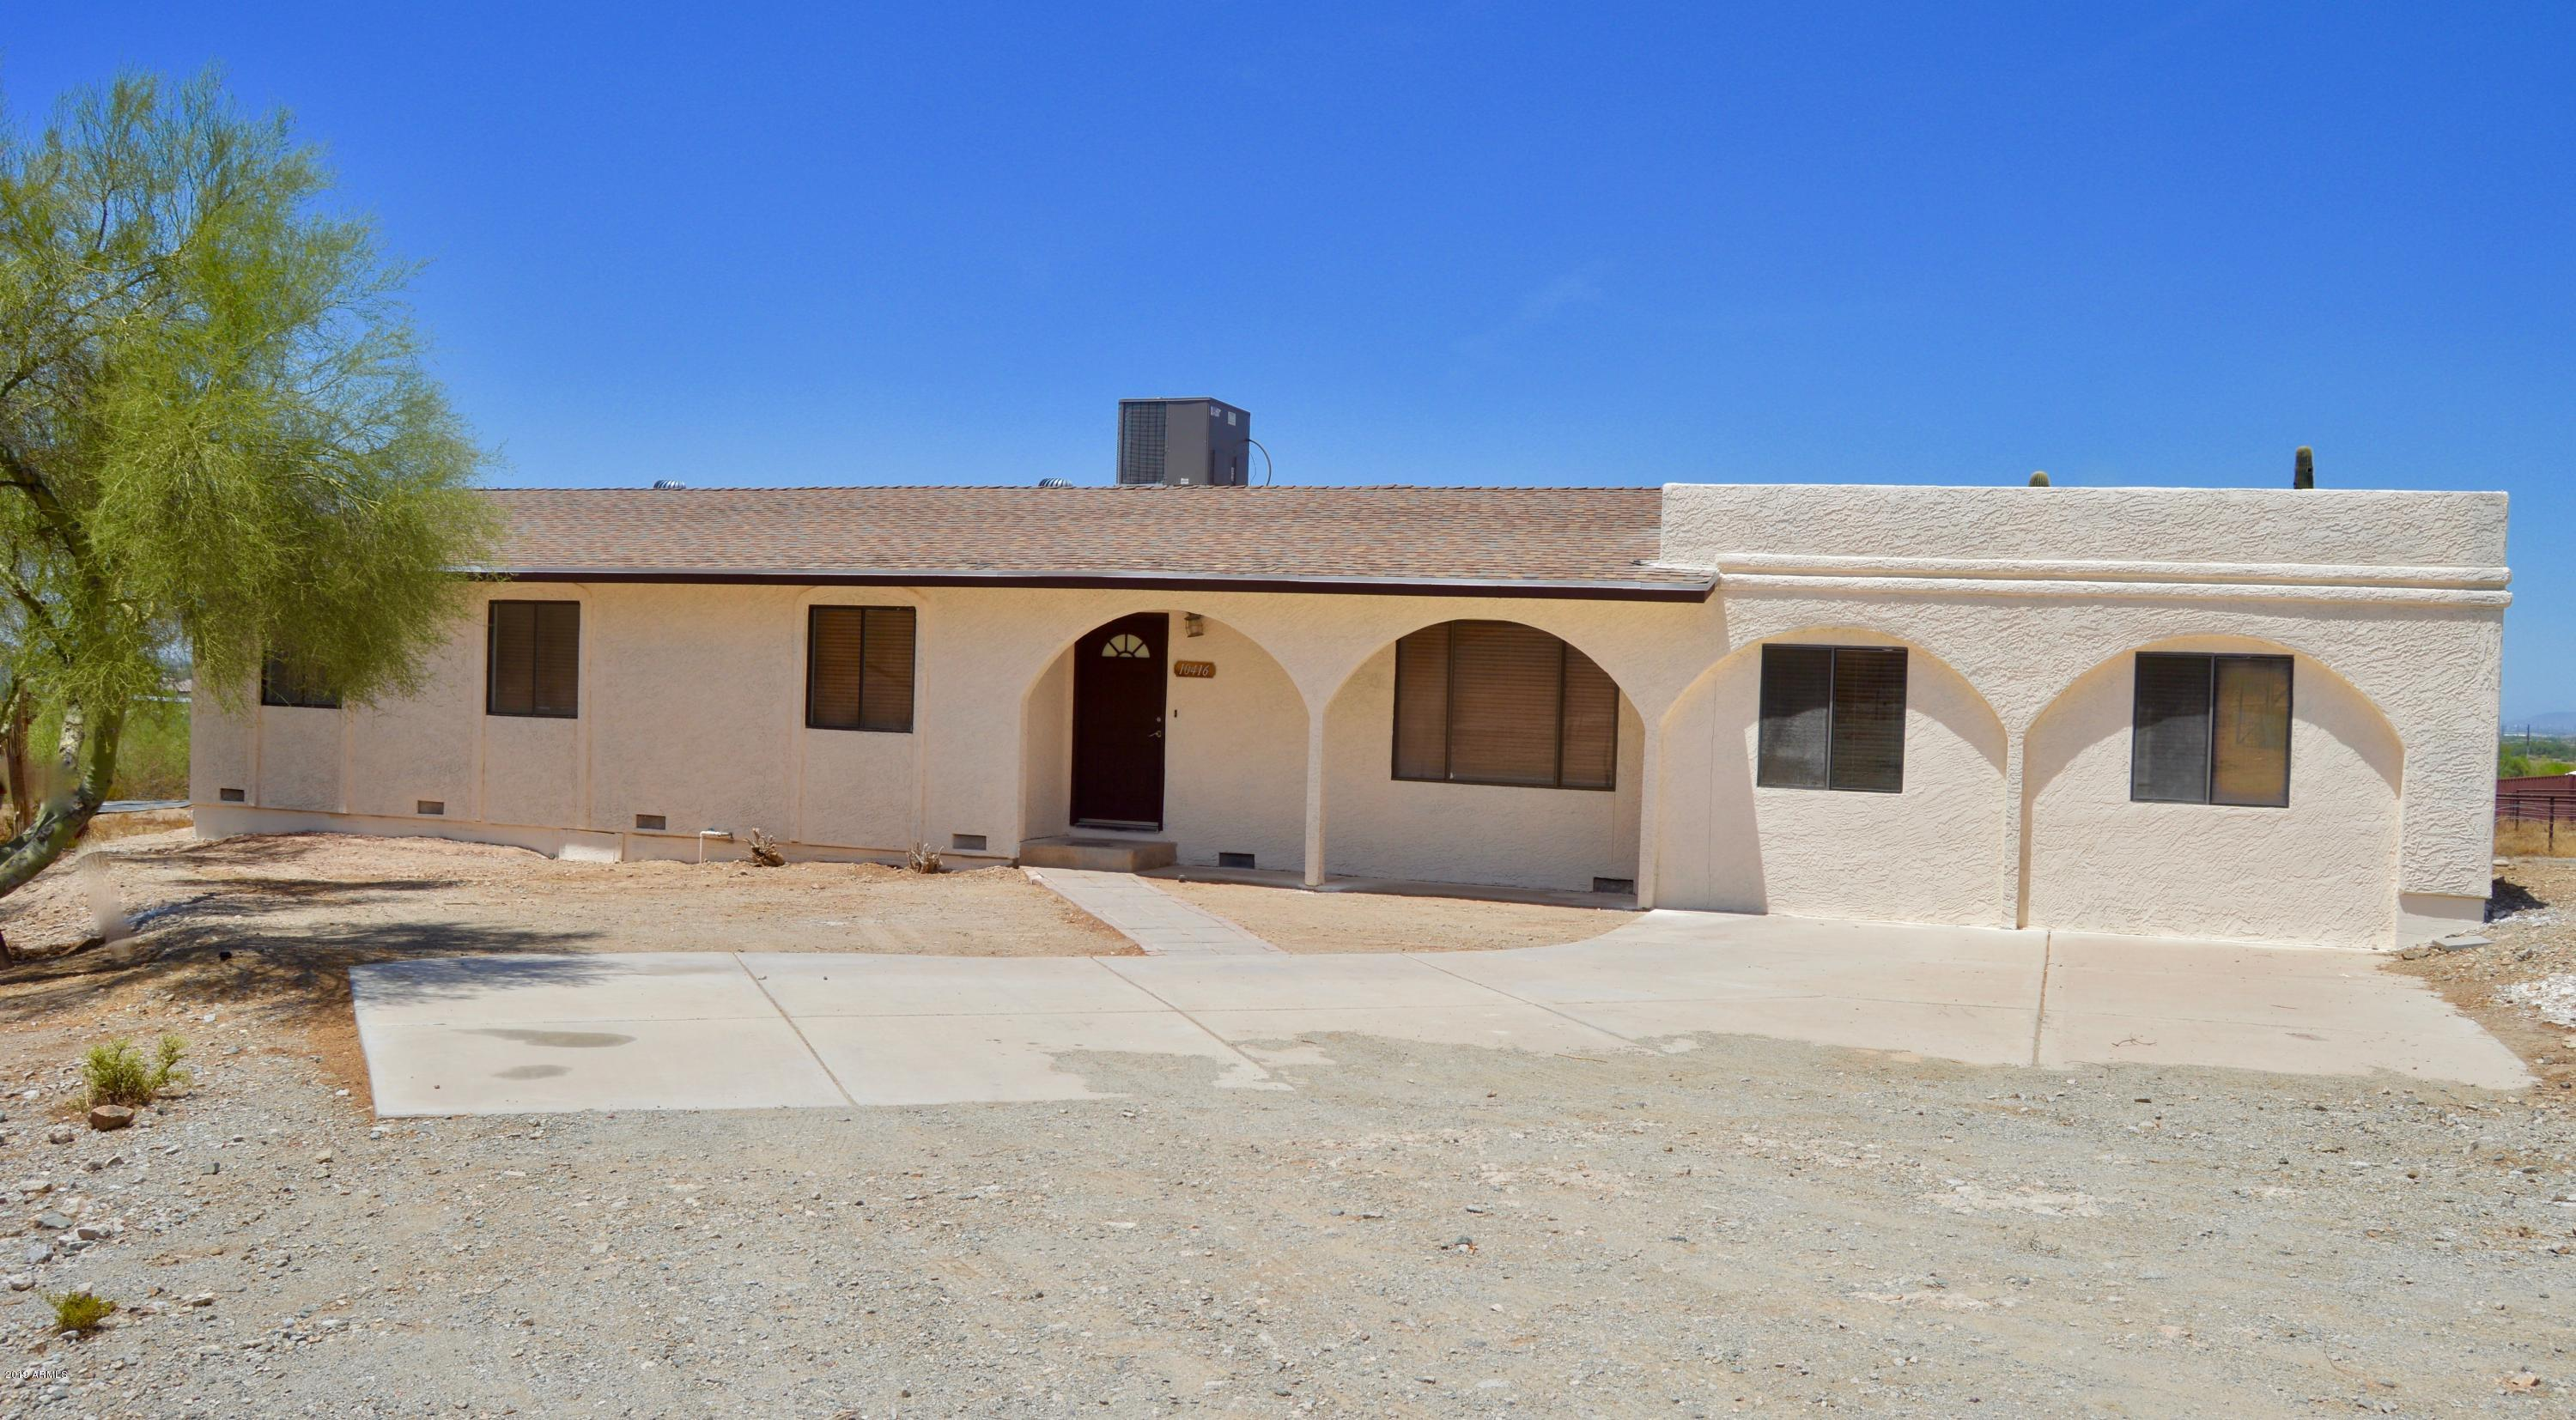 Magnificent Laveen Homes Horse Property For Sale Laveen Real Estate Download Free Architecture Designs Scobabritishbridgeorg